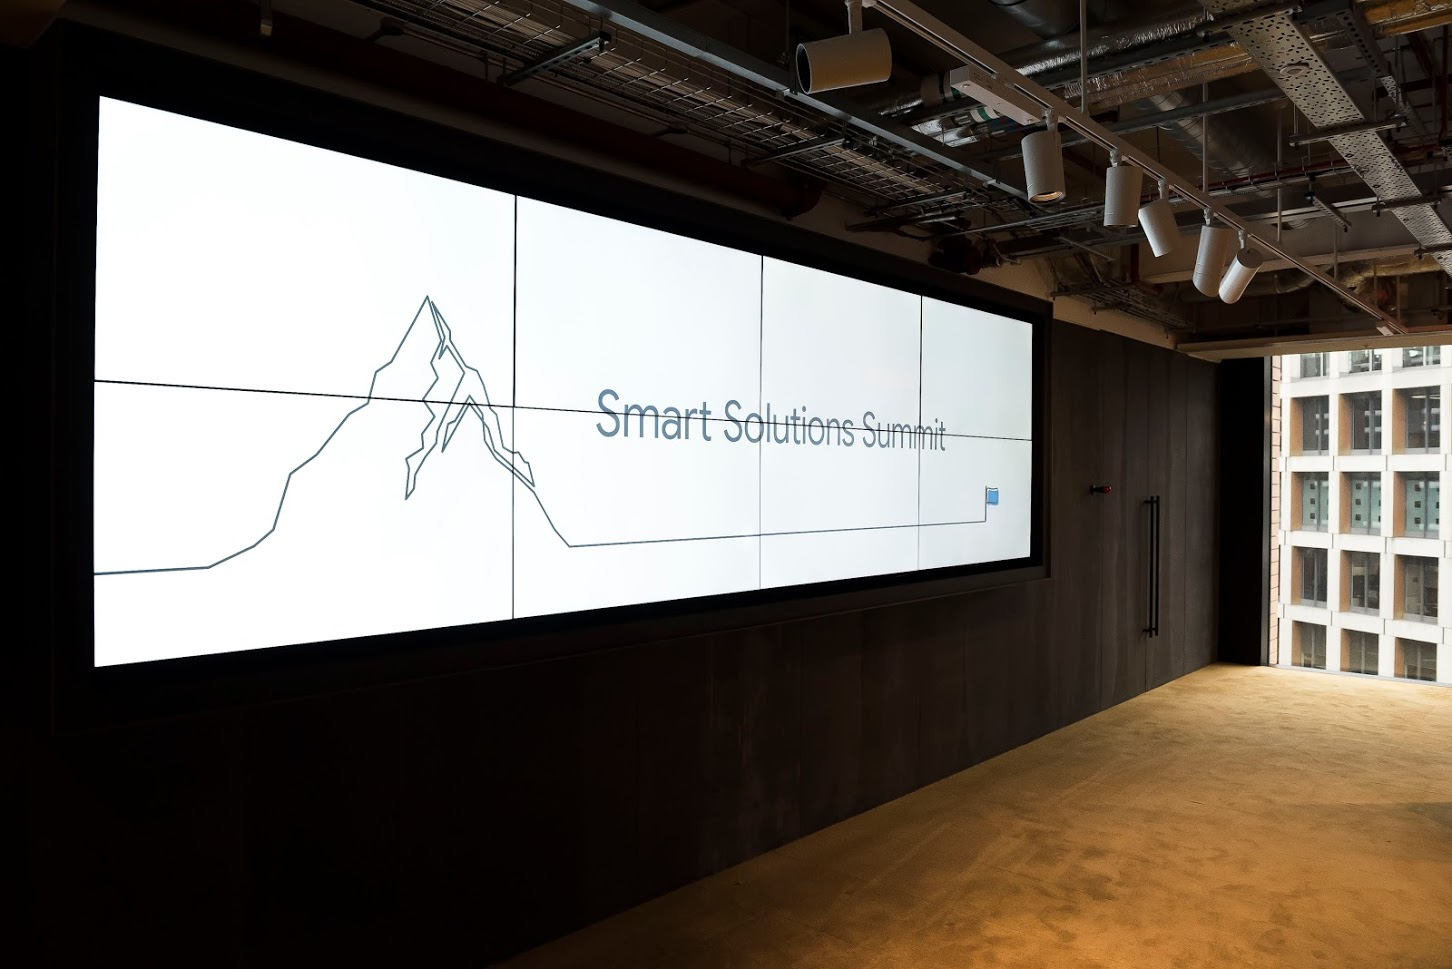 Key Takeaways from Google's Smart Solutions Summit 2019